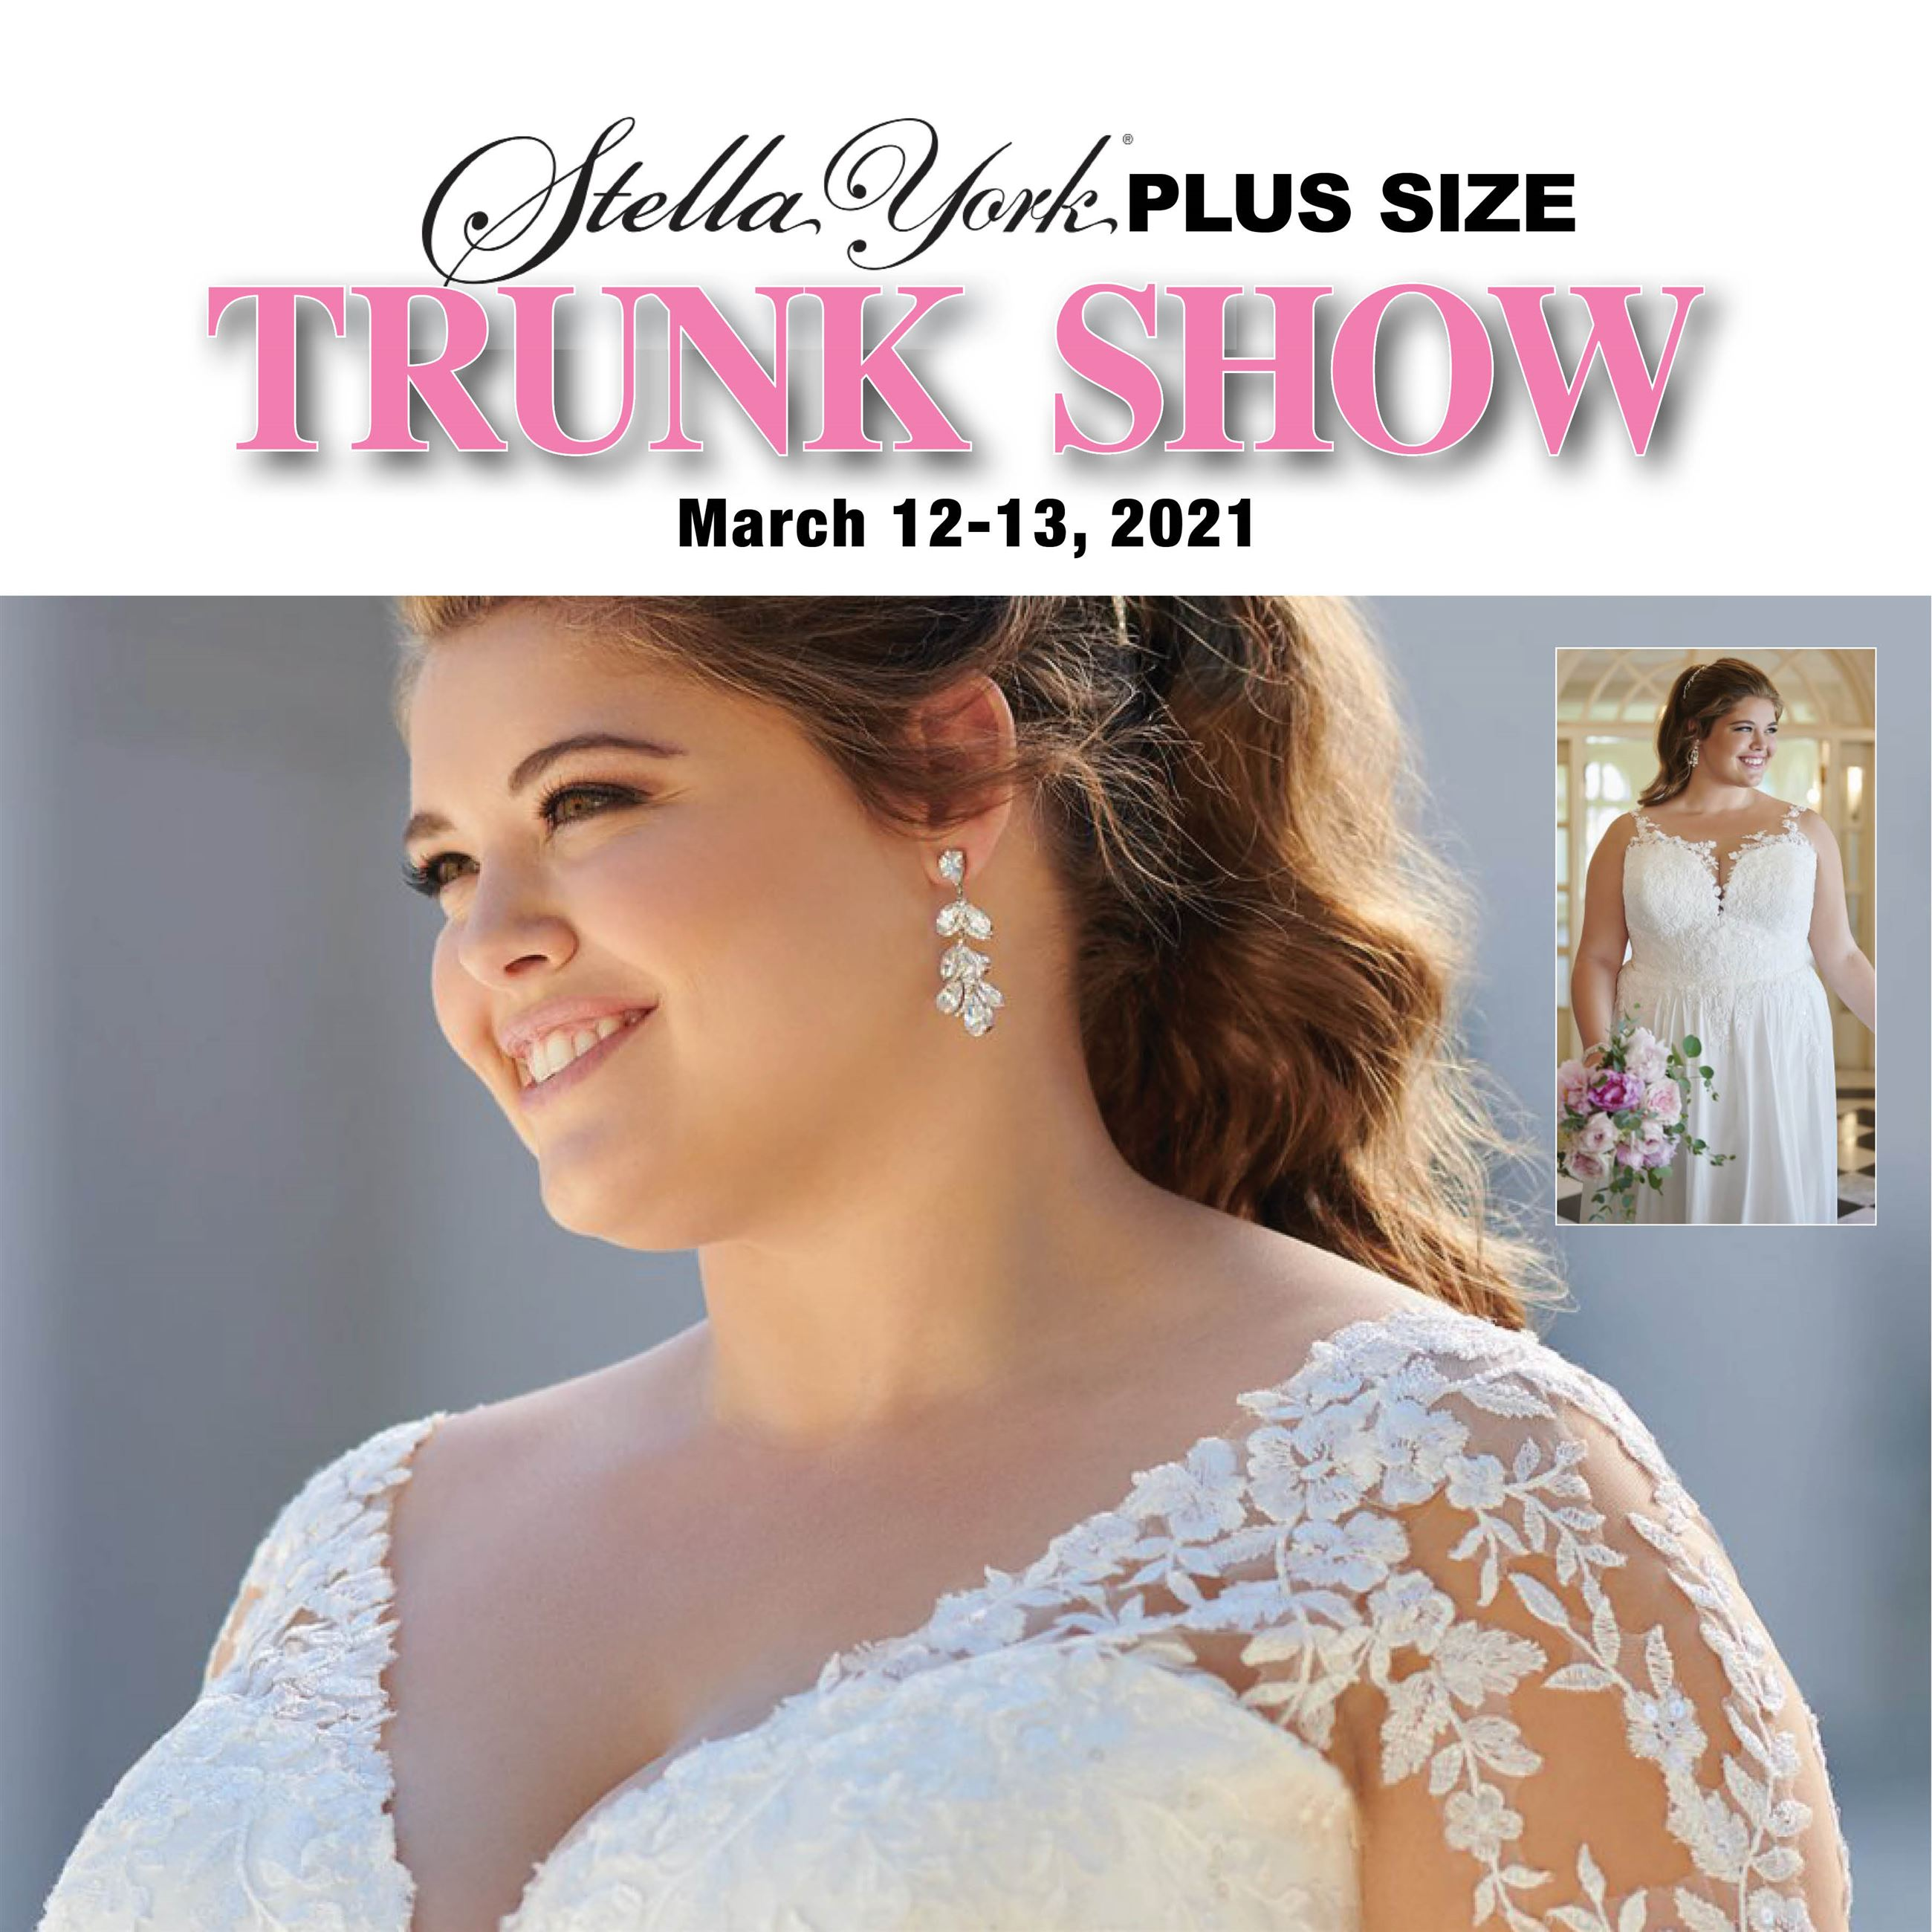 Stella York PLUS SIZE TRUNK SHOW Main Image